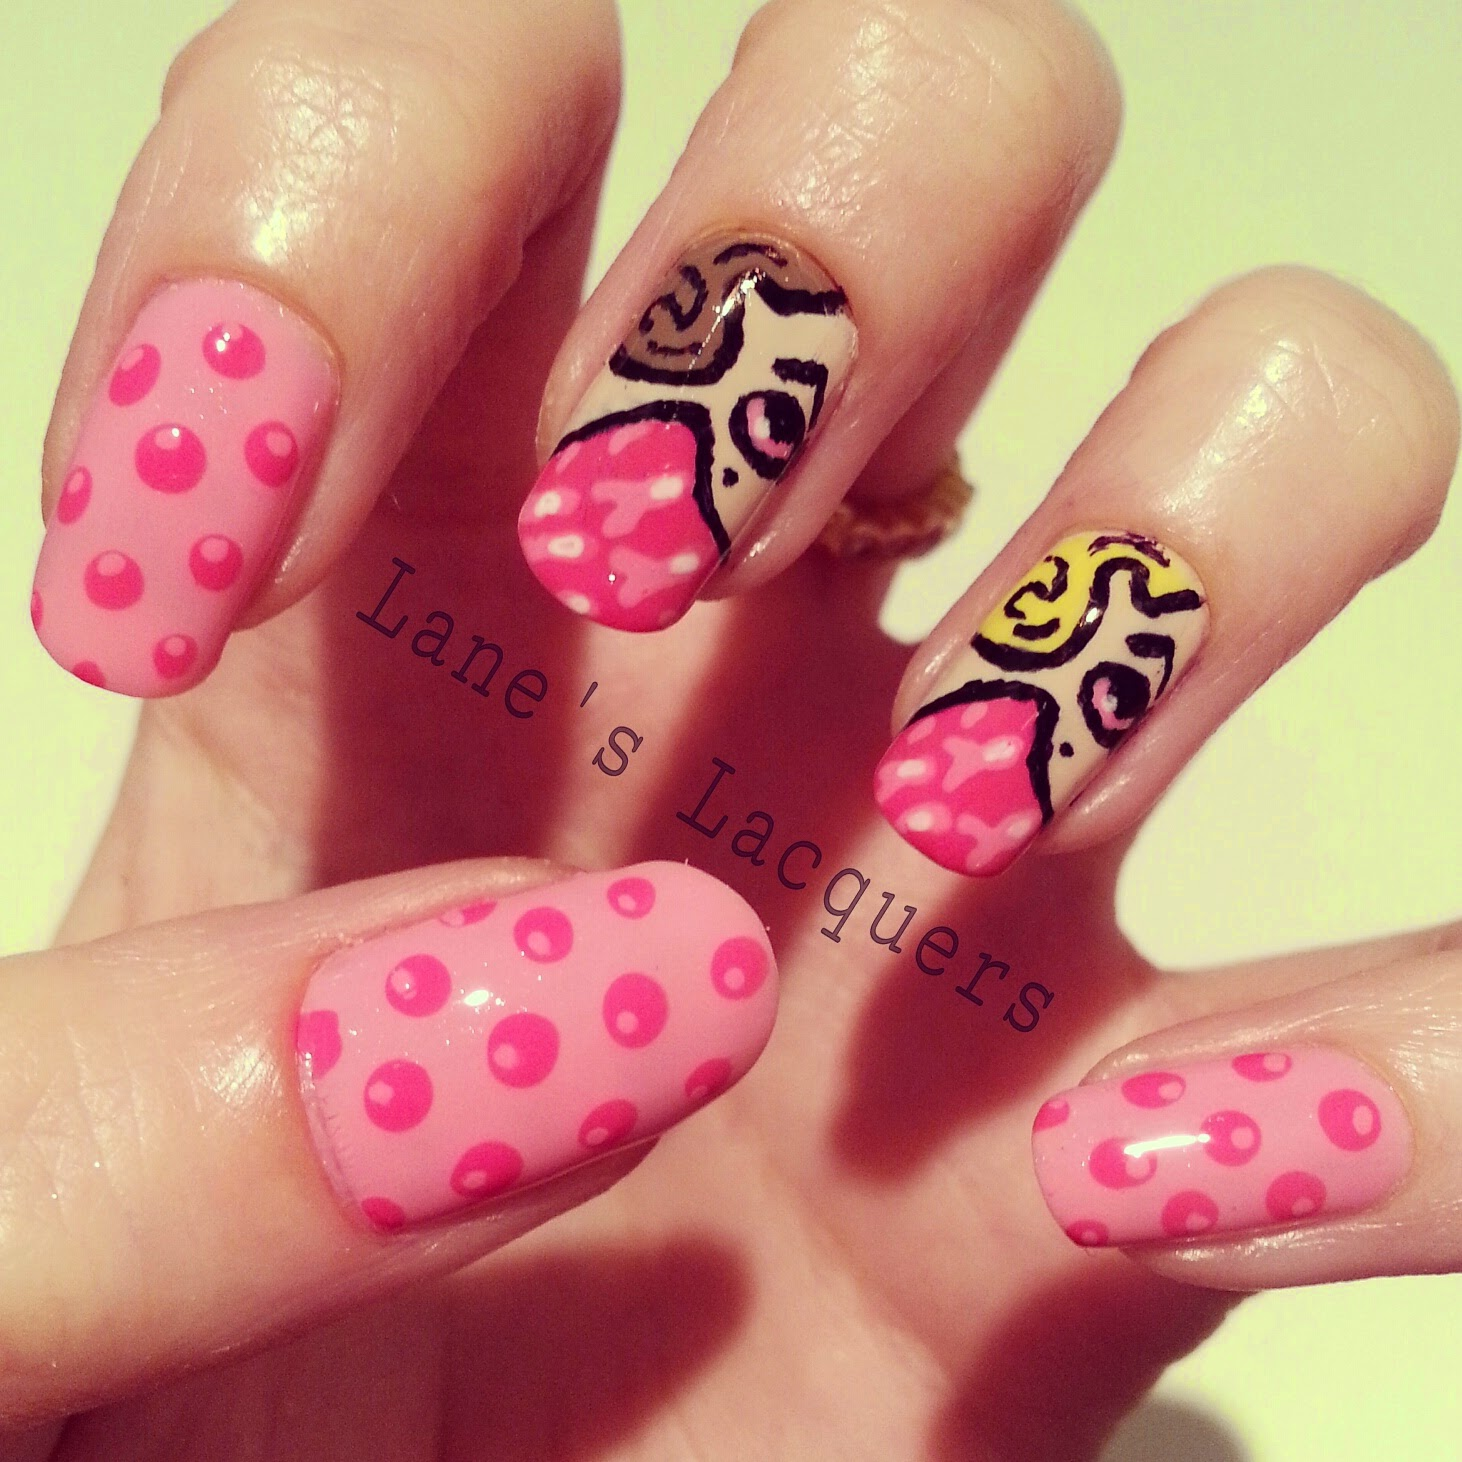 emilio-ramos-breast-cancer-awareness-nail-art